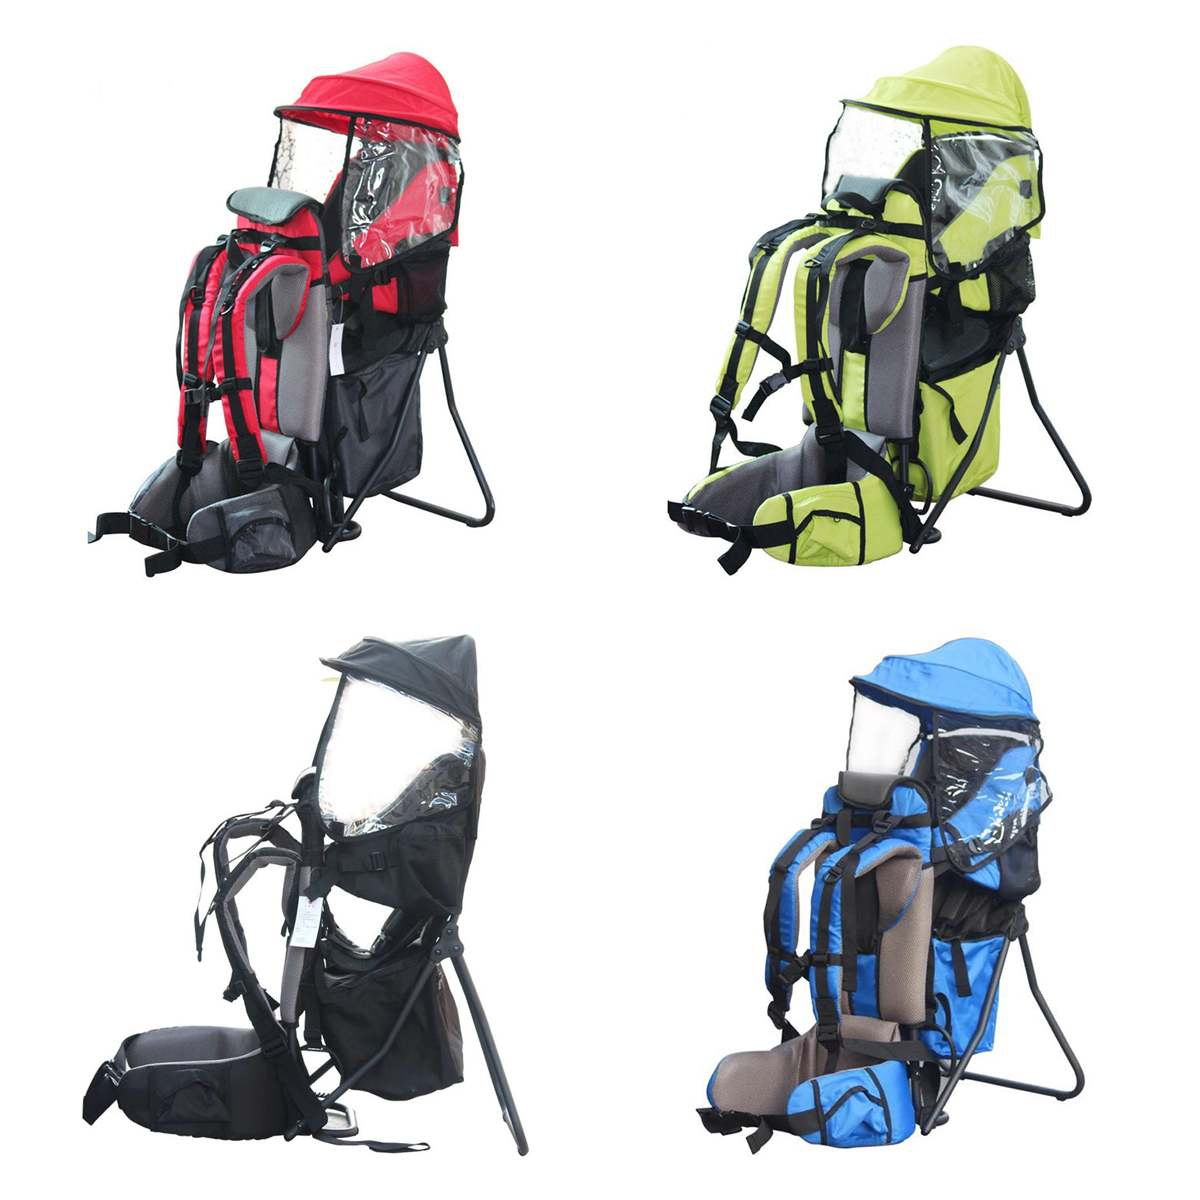 Load 30kg Adjustable Outdoor Baby Toddler Backpack Camping Climbing Bag Waterproof Mountaineering Hiking Child Kid CarrierLoad 30kg Adjustable Outdoor Baby Toddler Backpack Camping Climbing Bag Waterproof Mountaineering Hiking Child Kid Carrier